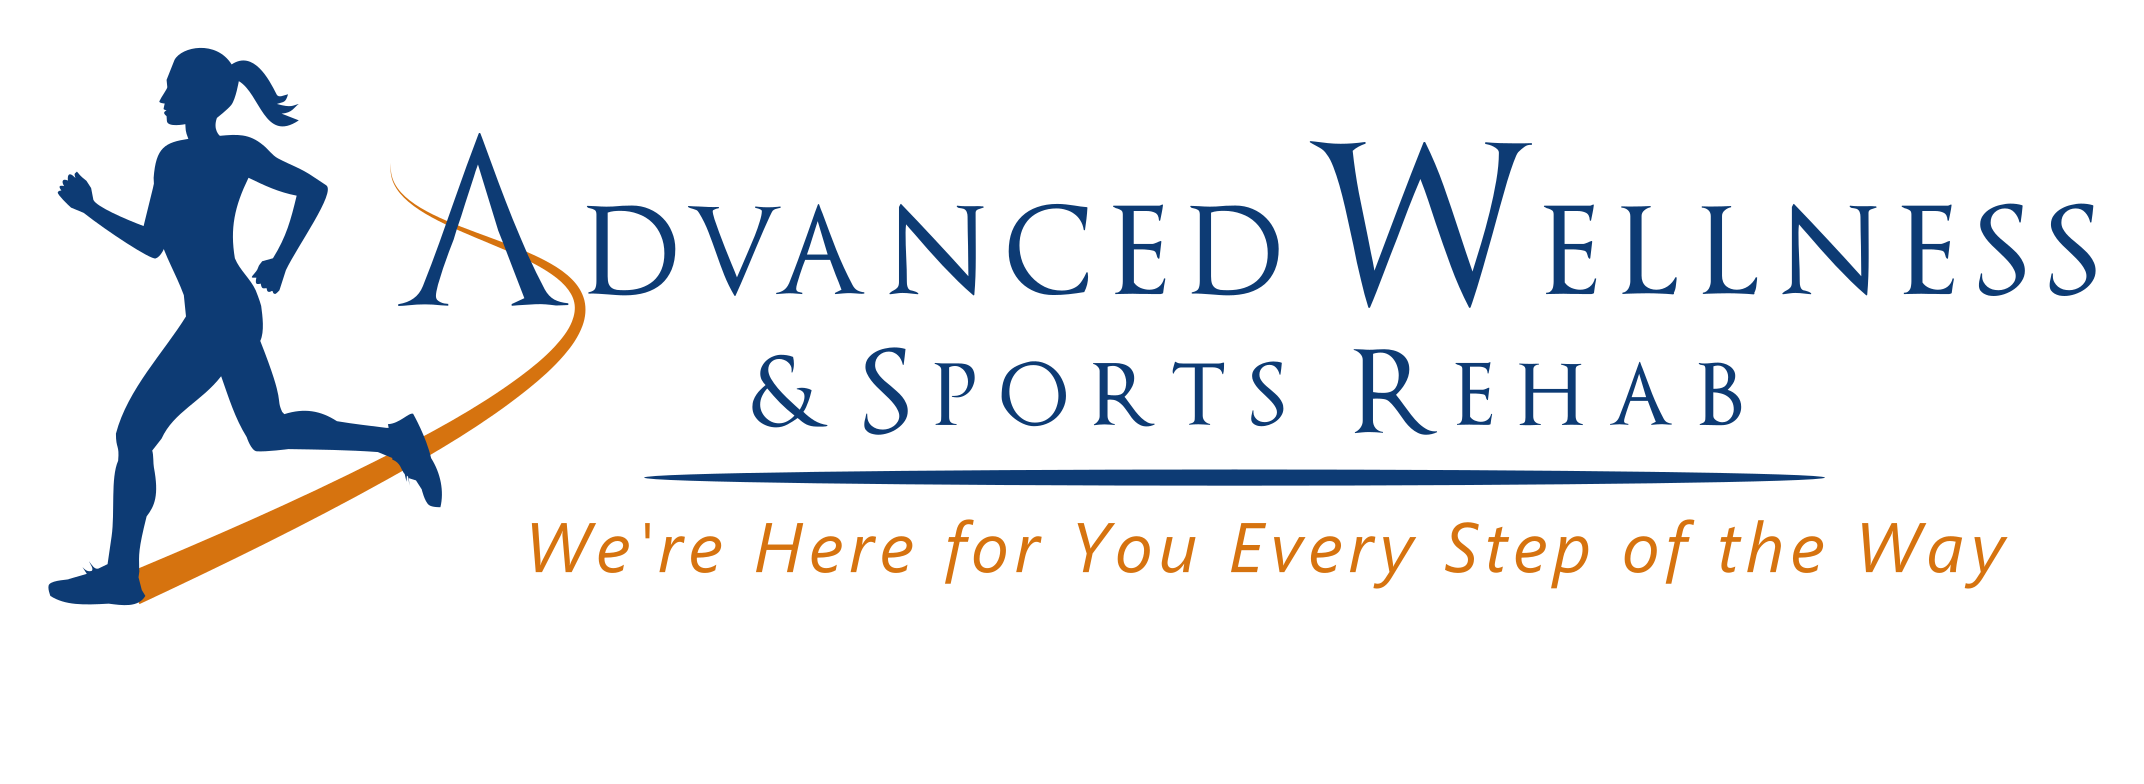 Advanced Wellness & Sports Rehab logo